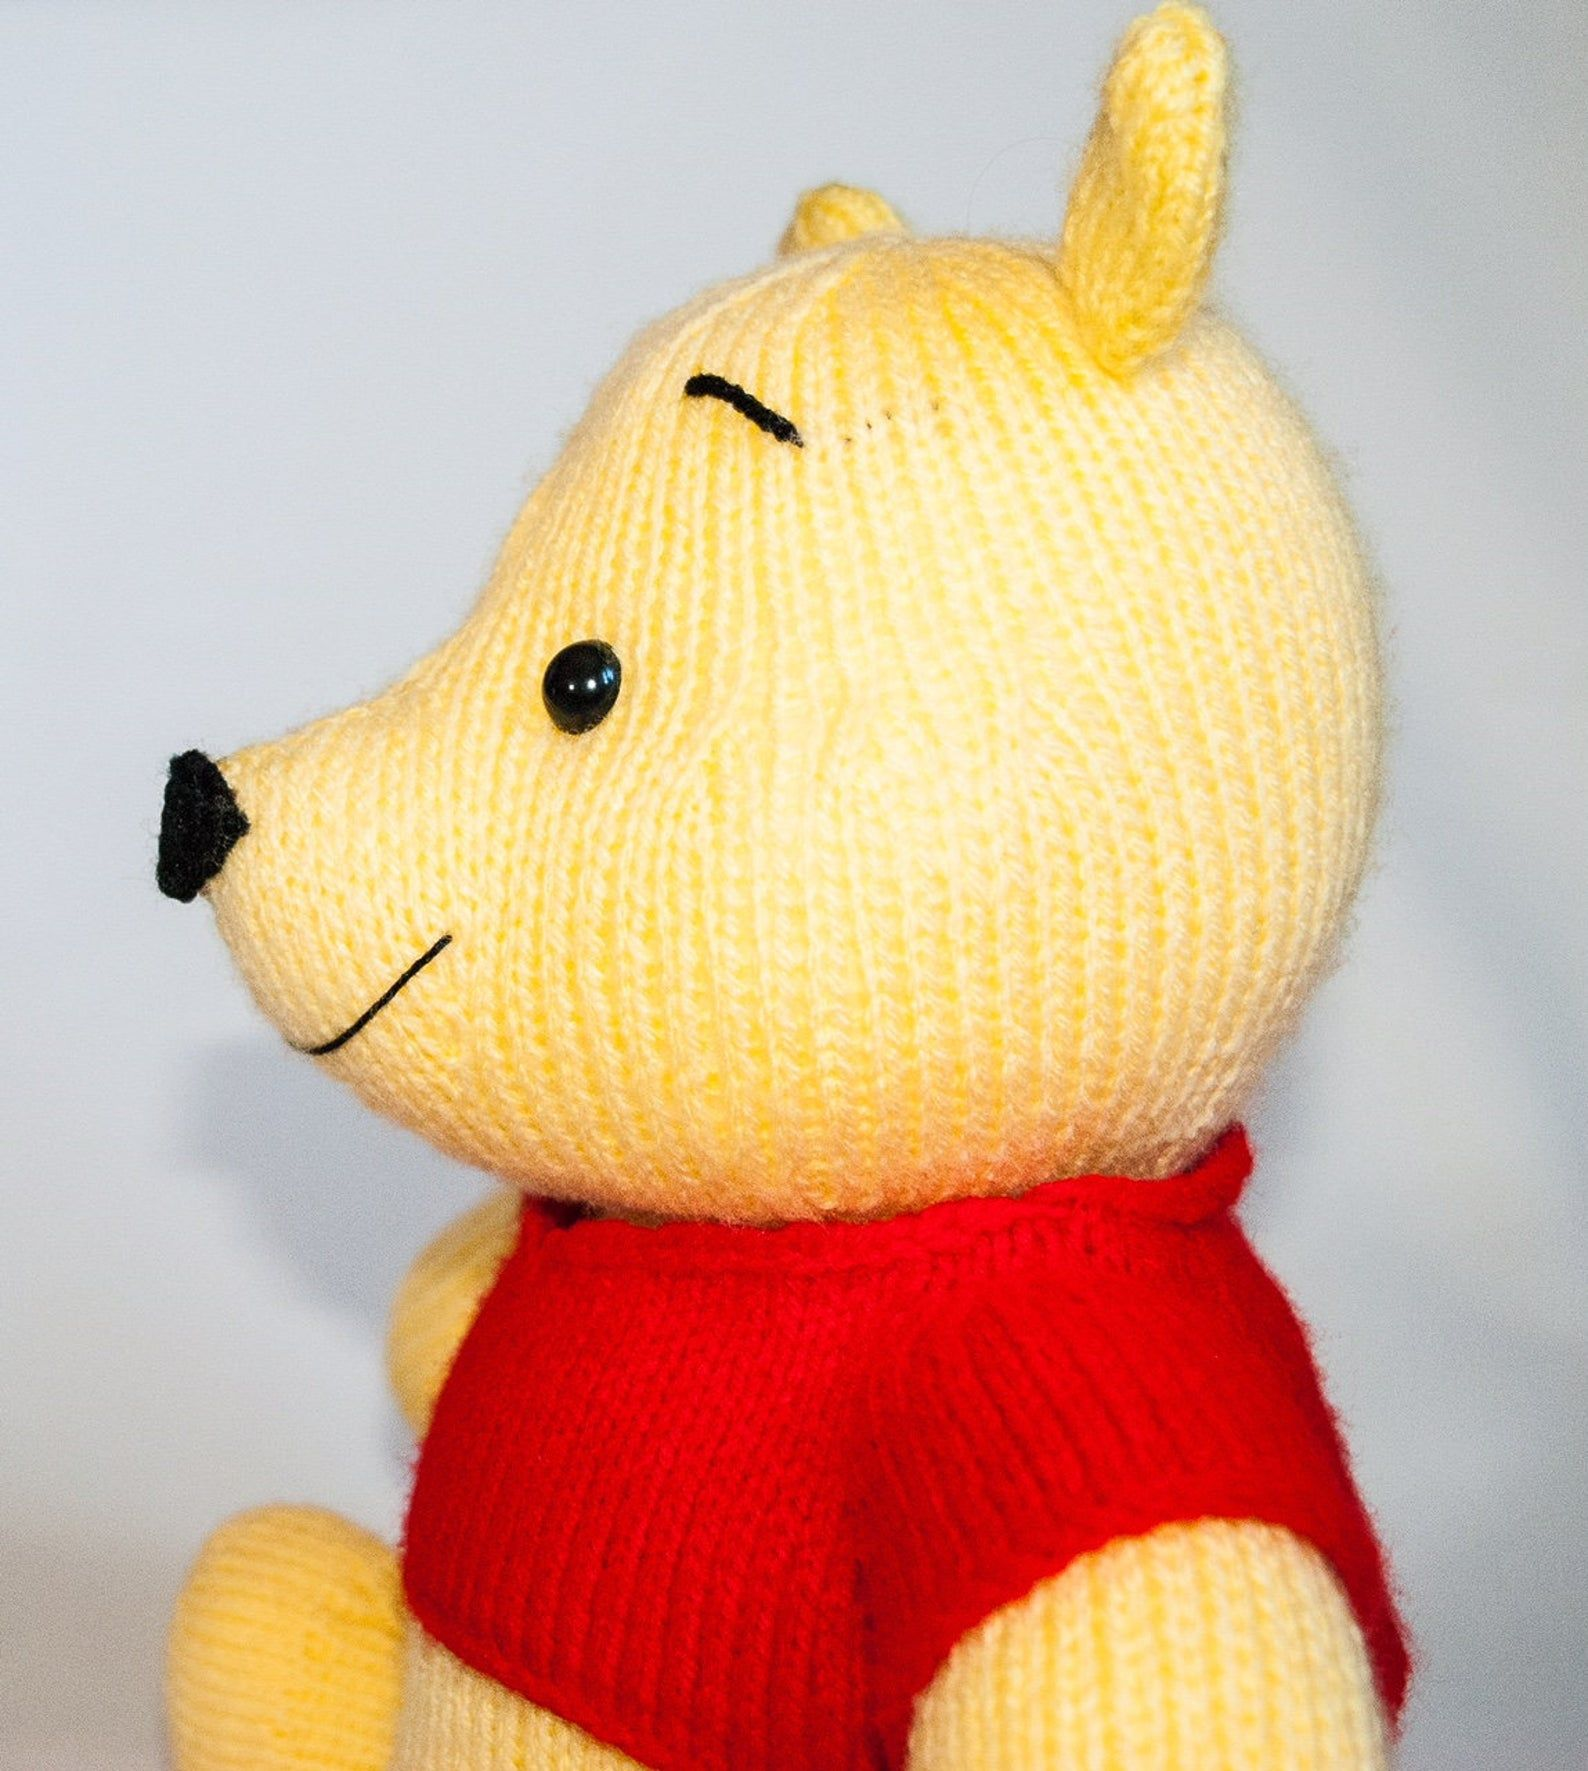 Eeyore inspired choc orange cover 15cms Winnie the Pooh toy KNITTING PATTERN